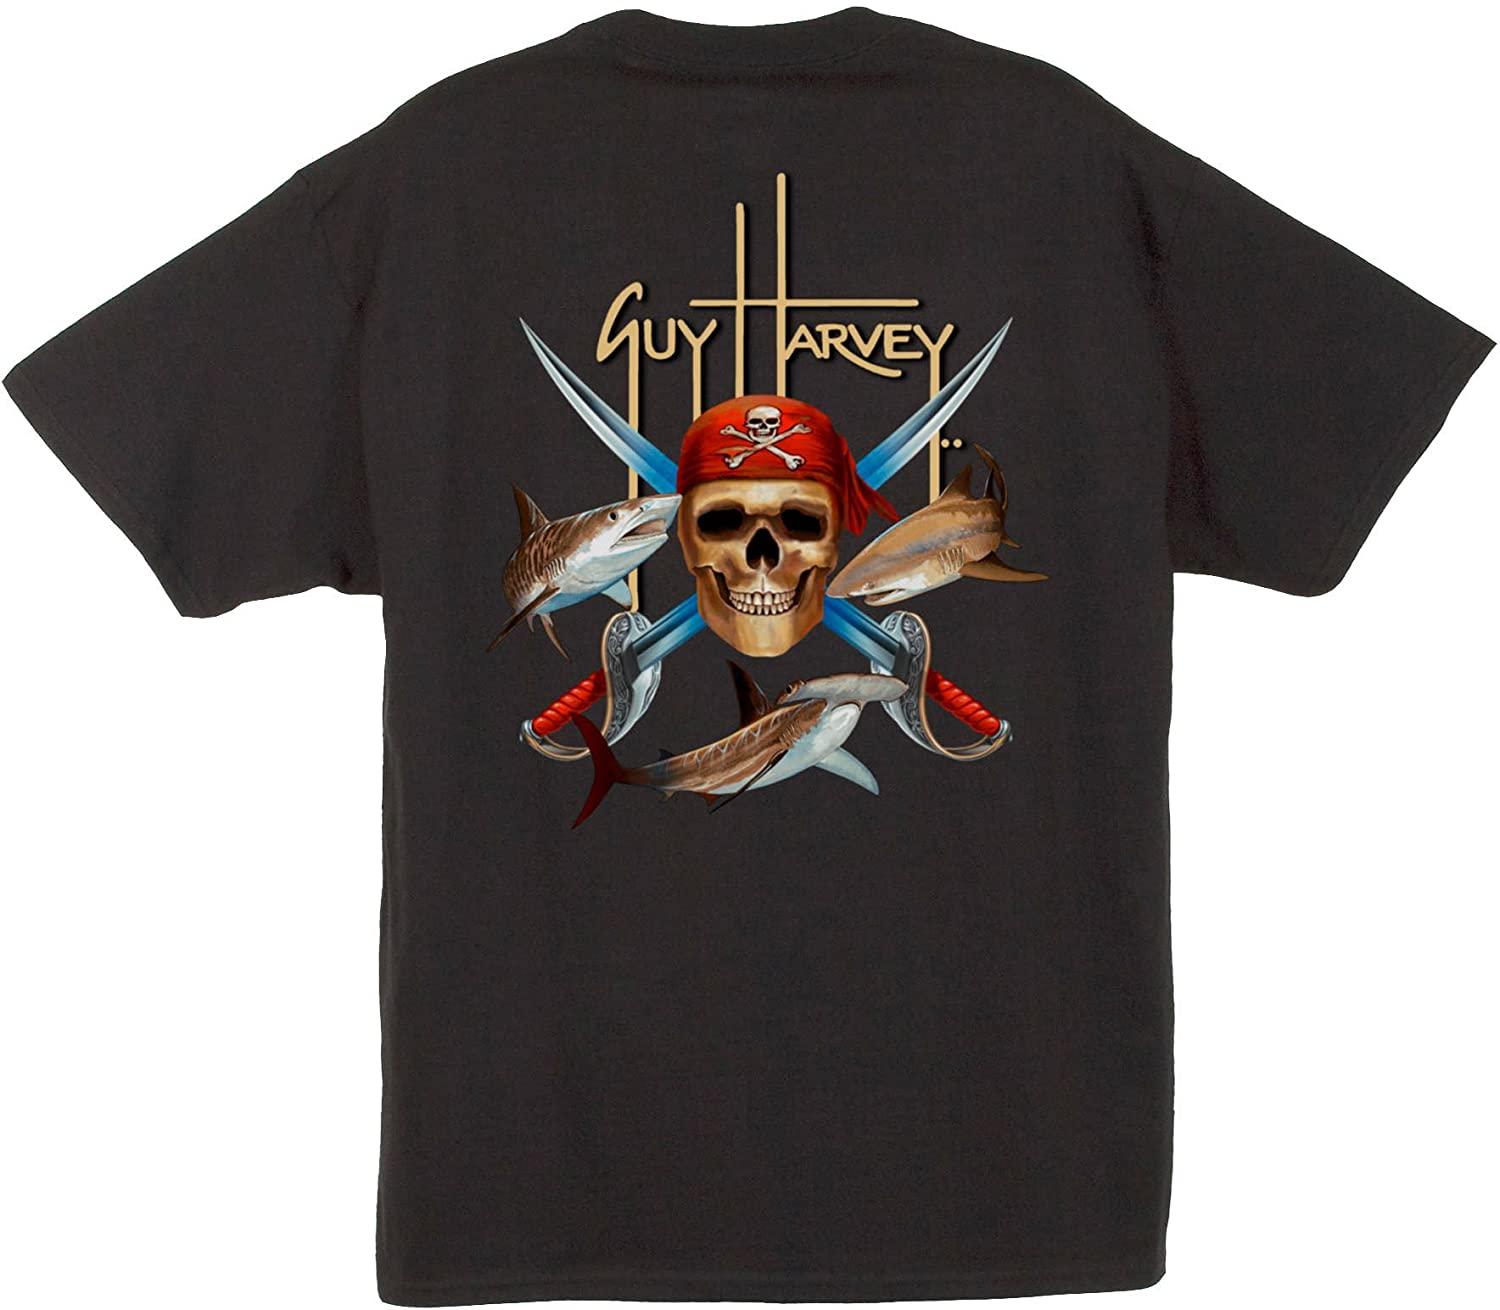 26989032 The tee is the pocketed Hanes Beefy Tee with Guy Harvey's art printed on.  Full back 14 screen design of Guy Harvey's amazingly detailed and colorful  ...